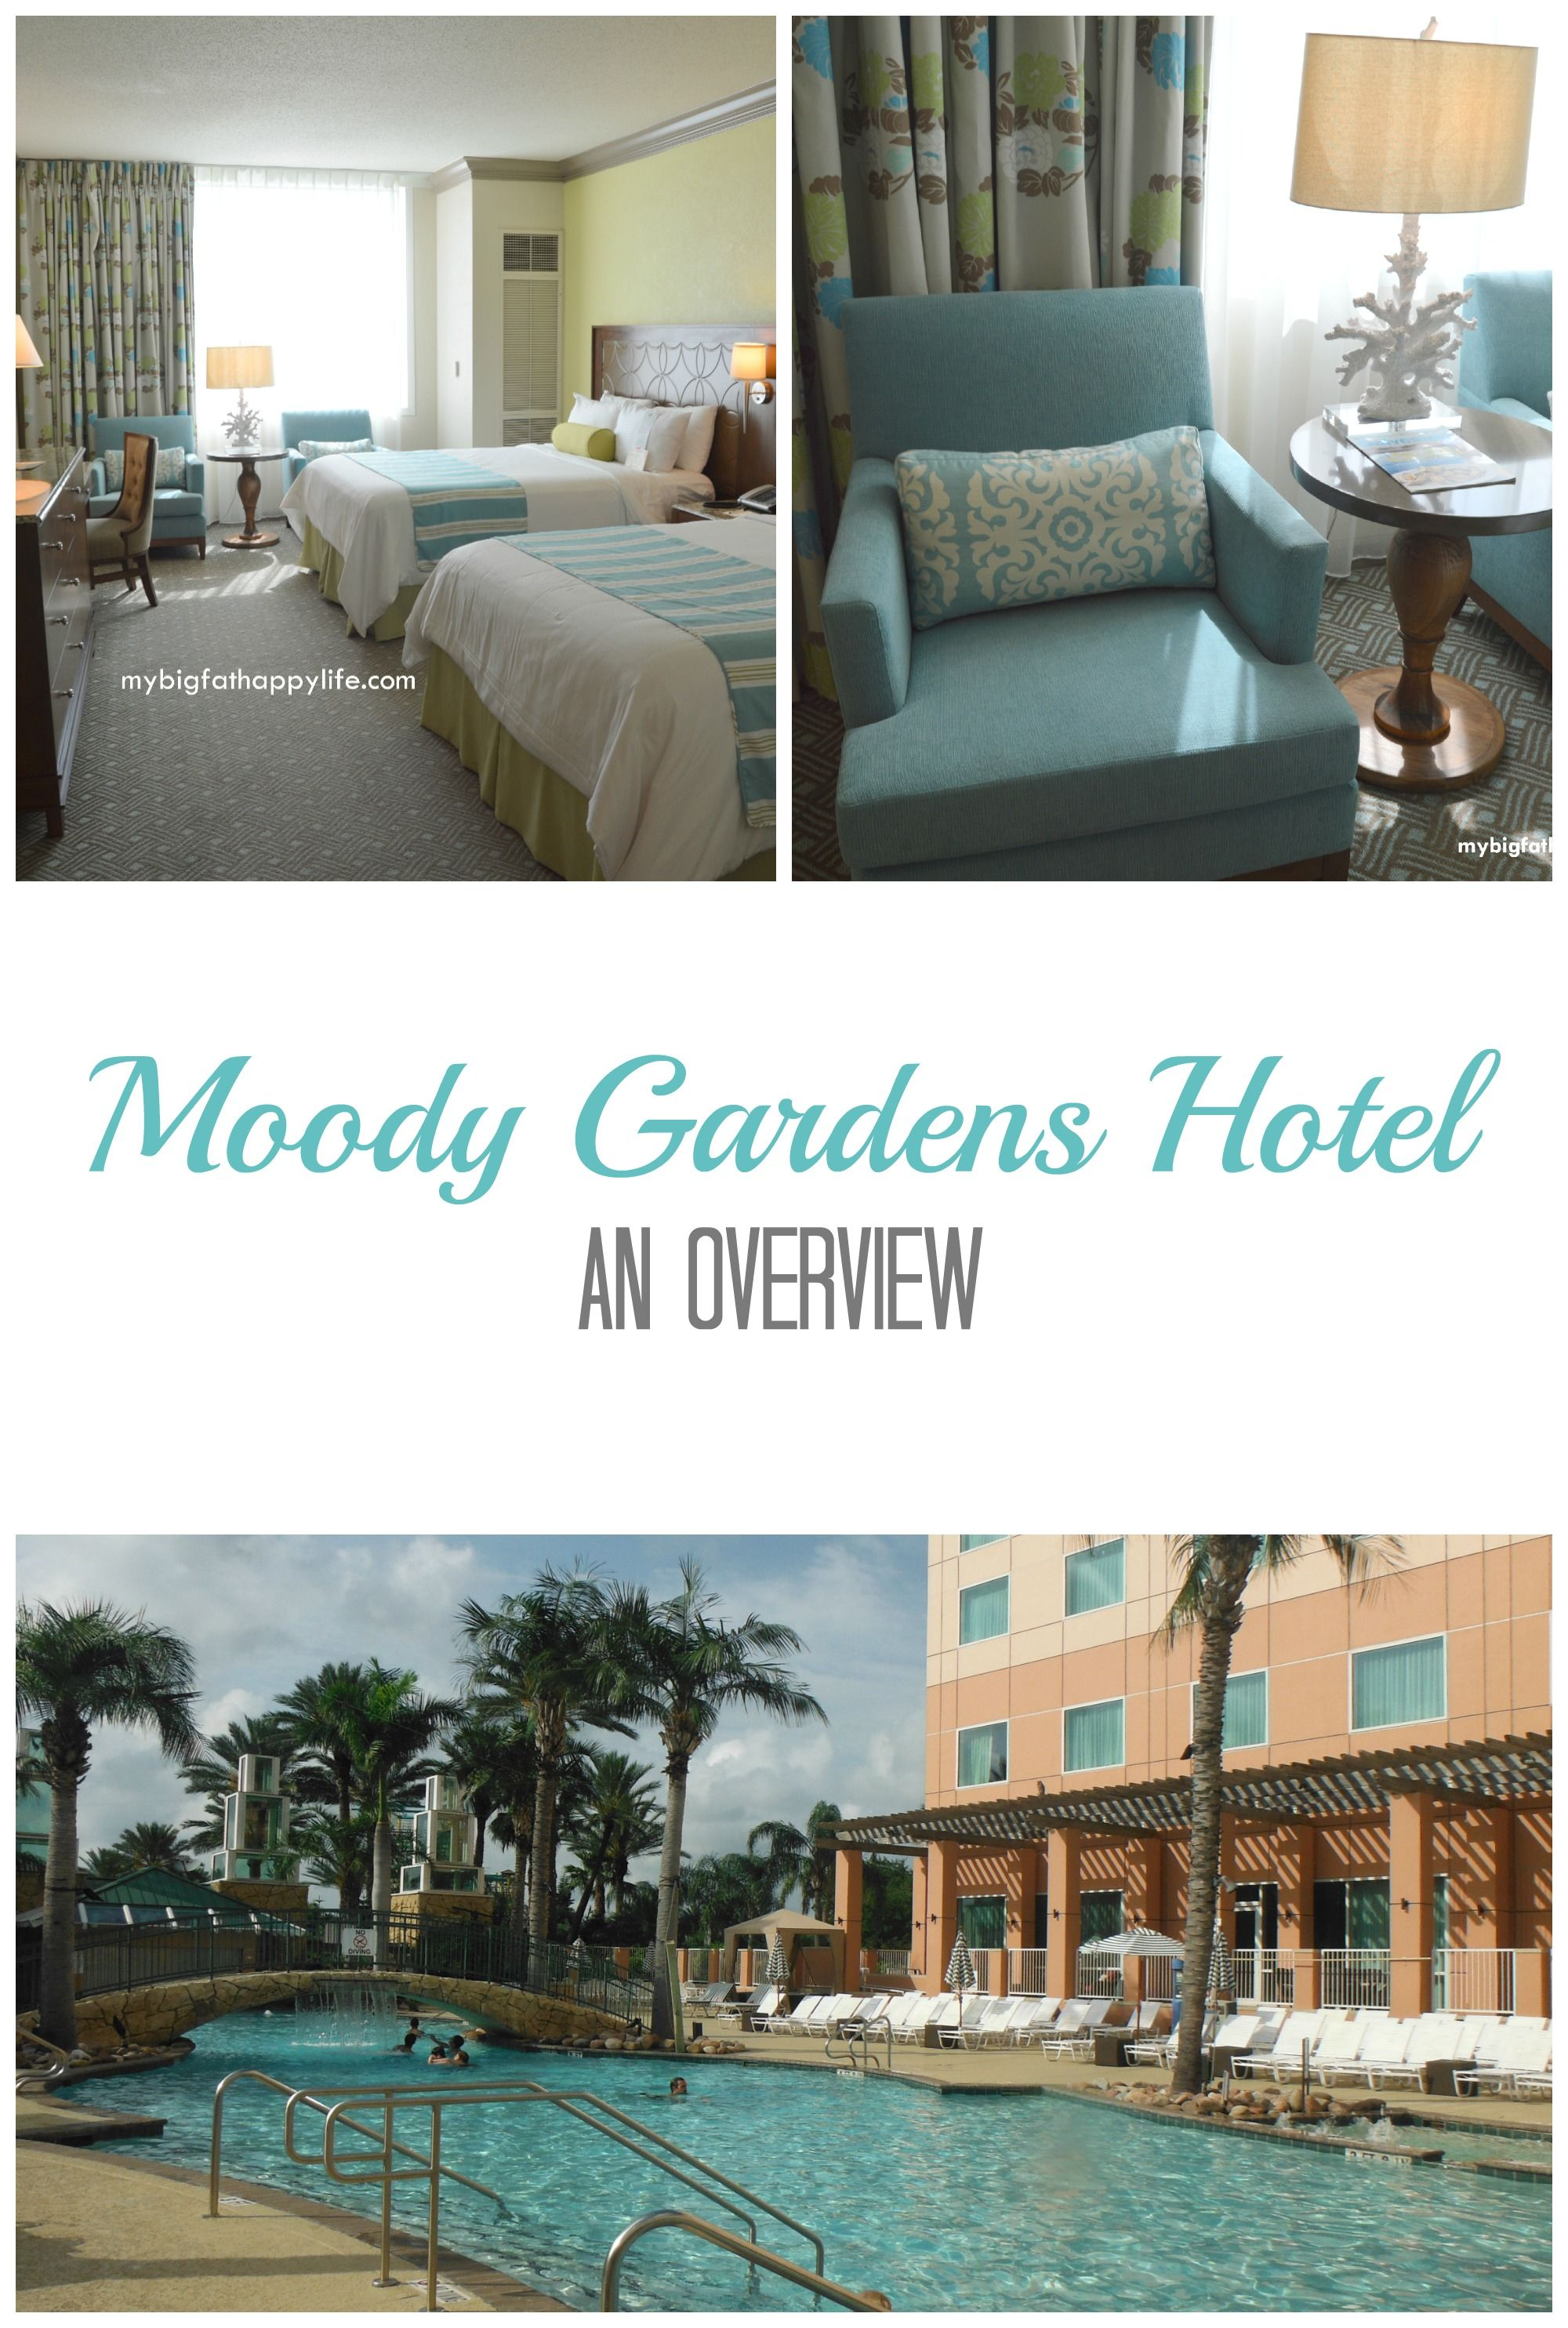 df101865cce1a29a4225abd0093a47c1 - Hotels Close To Moody Gardens In Galveston